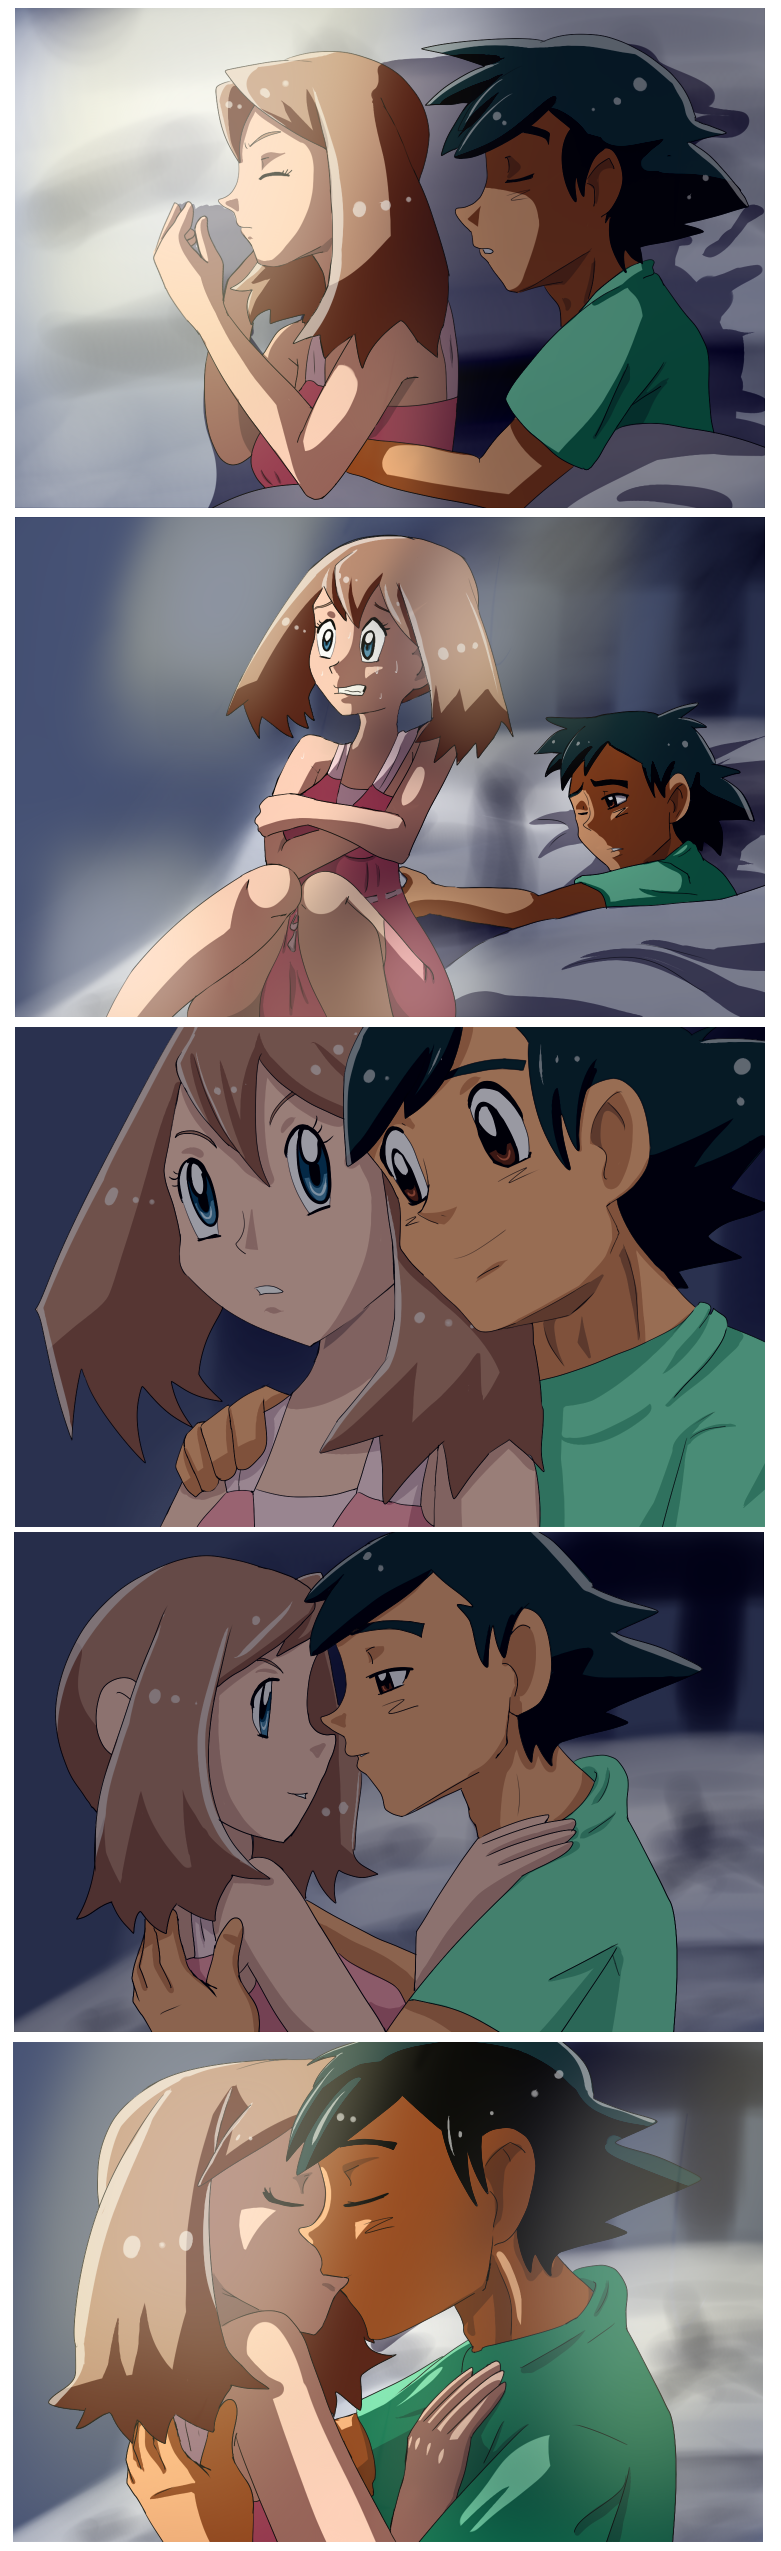 Ash Comforts May Scared Of Thunderstorm By Riadorana On Deviantart